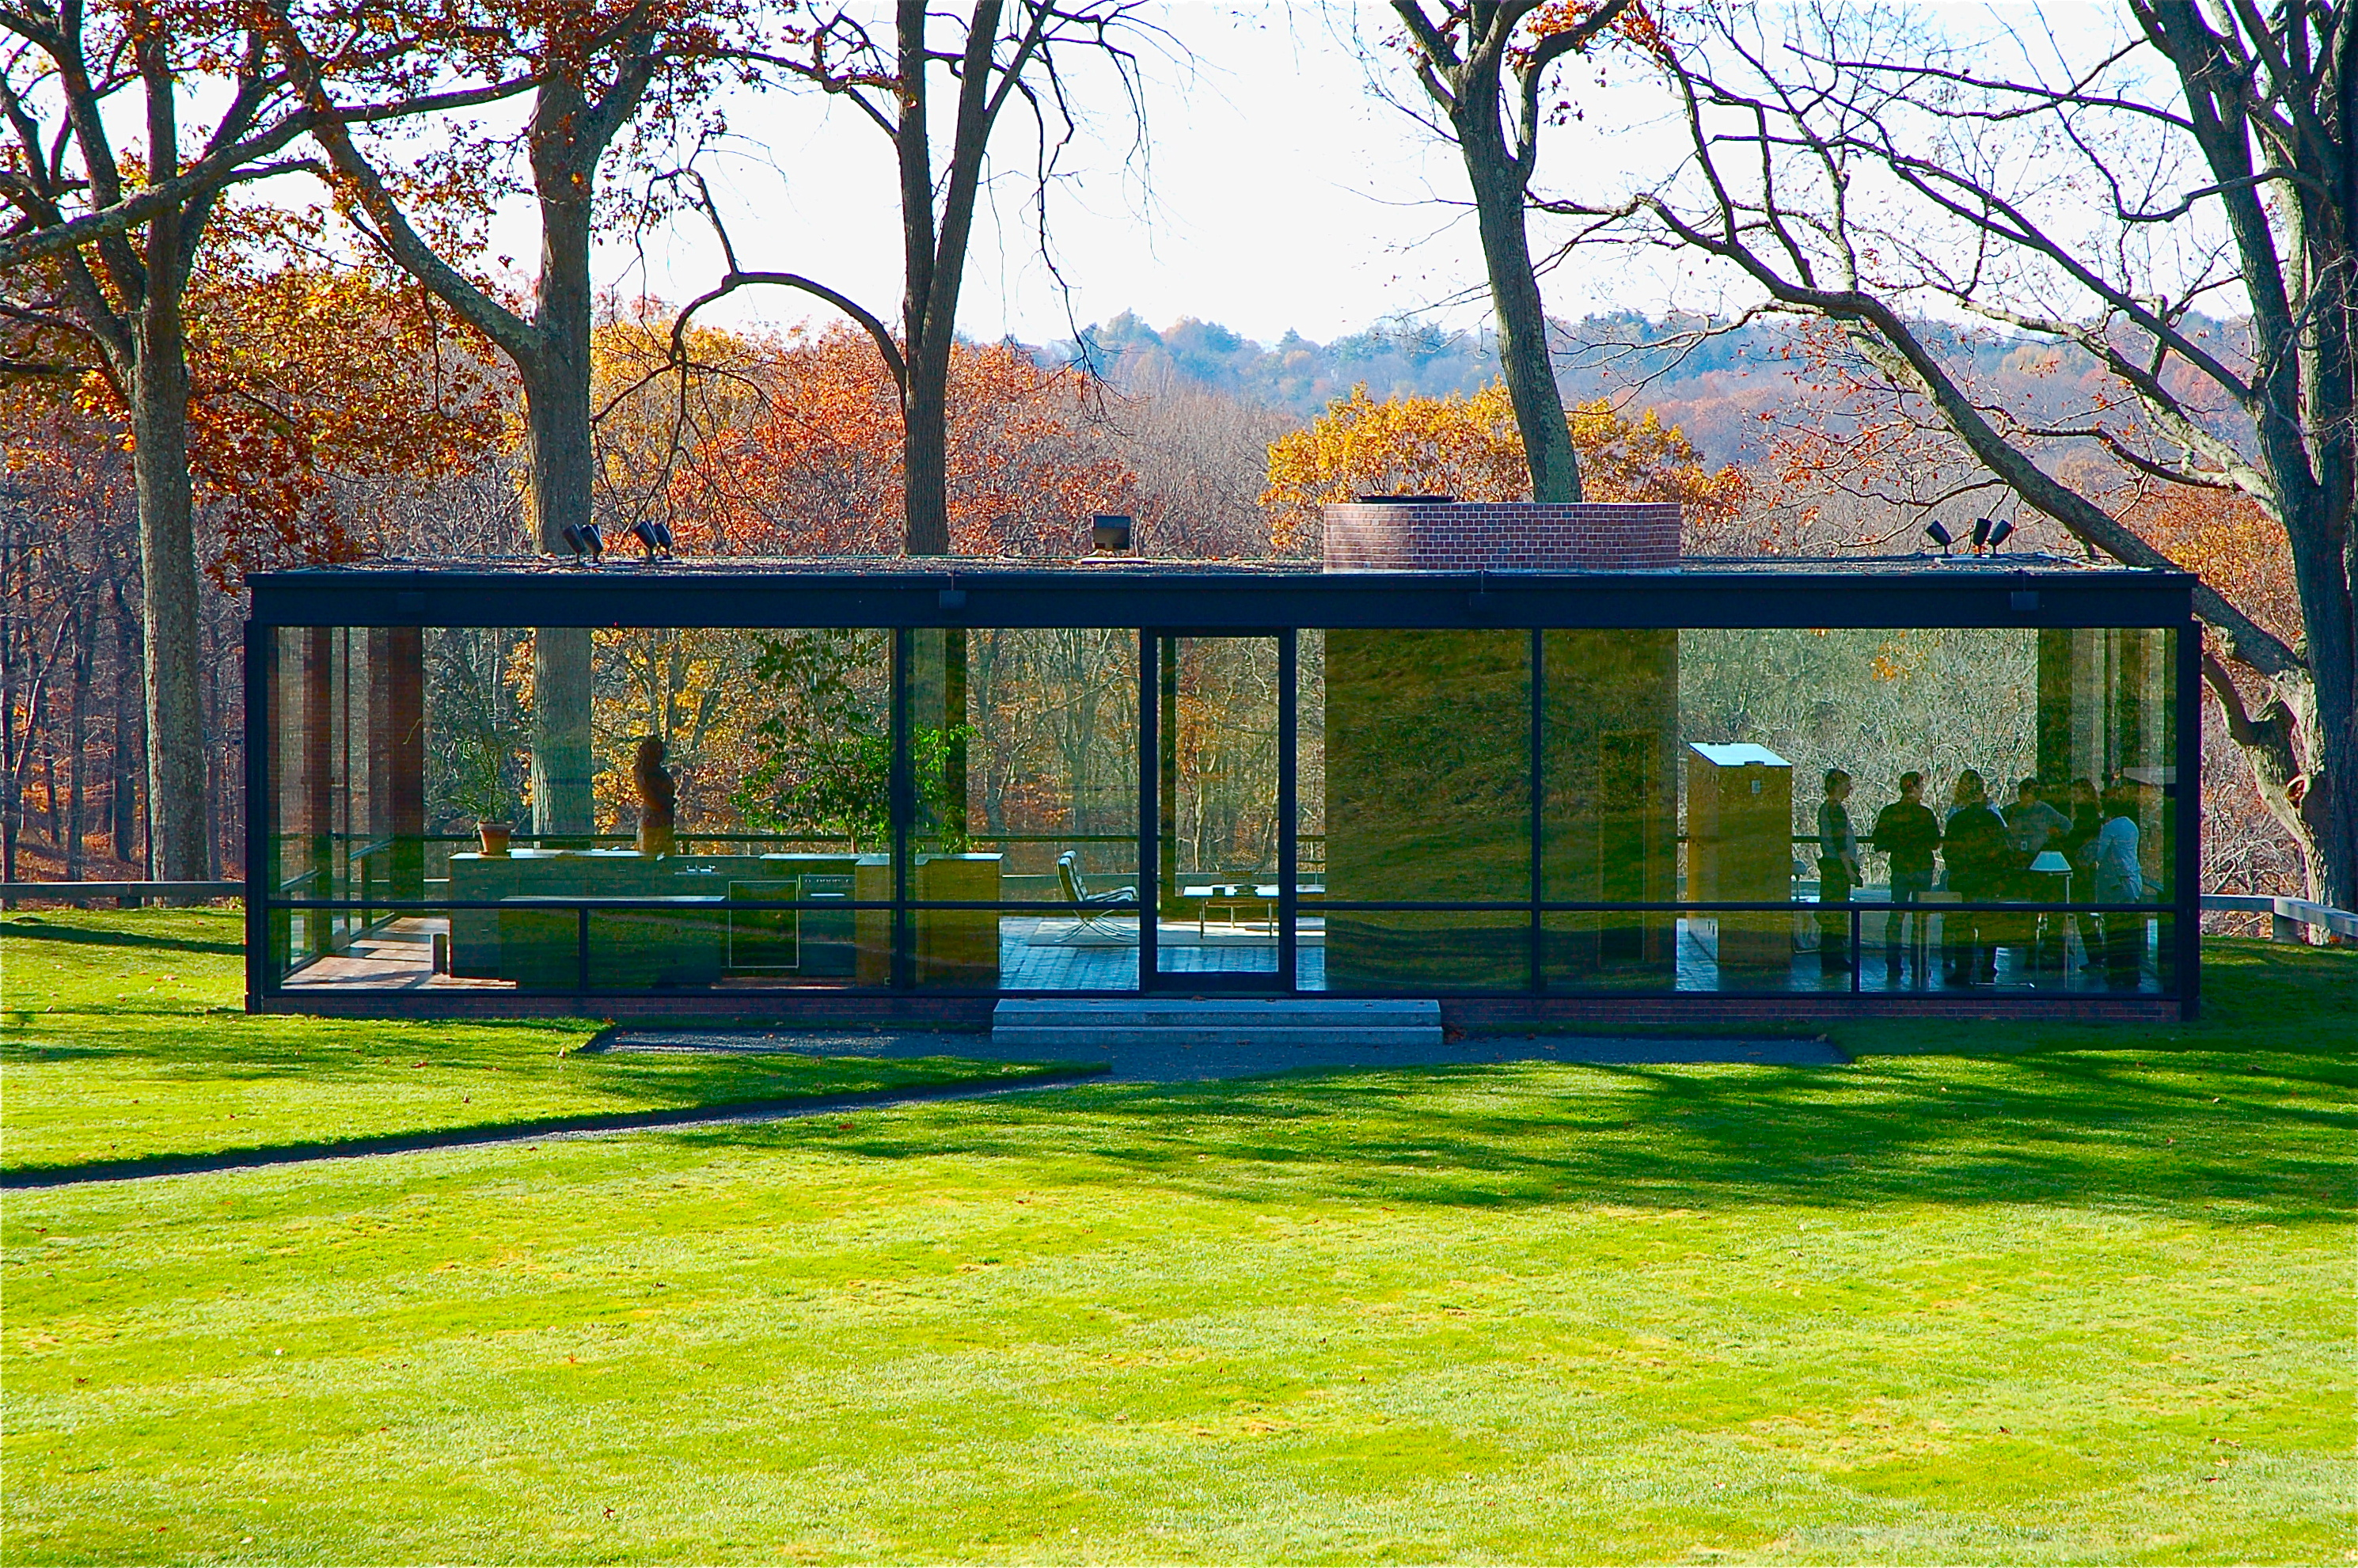 Philip johnson bailar sobre arquitectura for The glass house plan